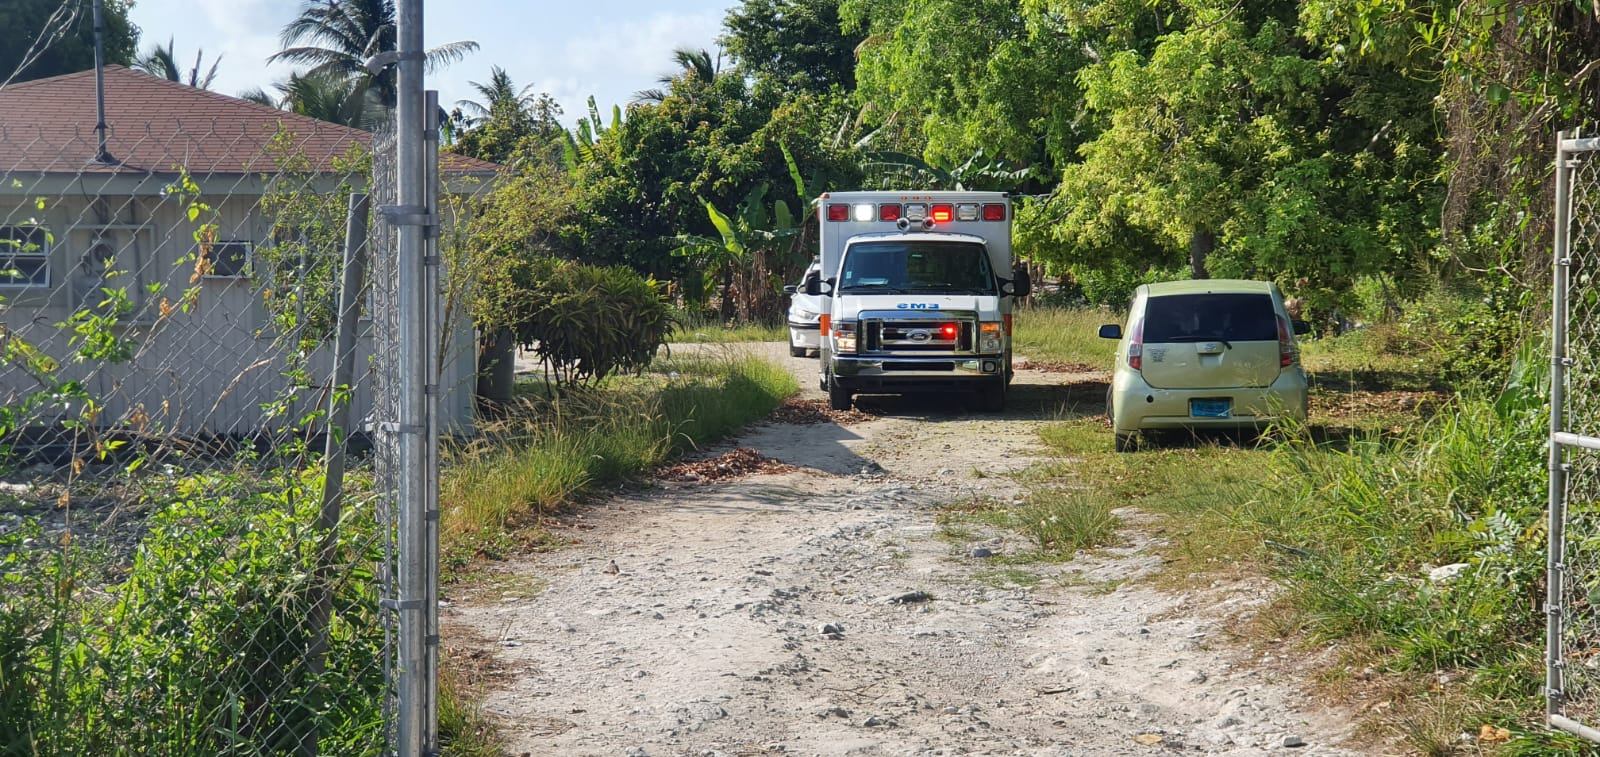 Man found hanged in Haitian Village